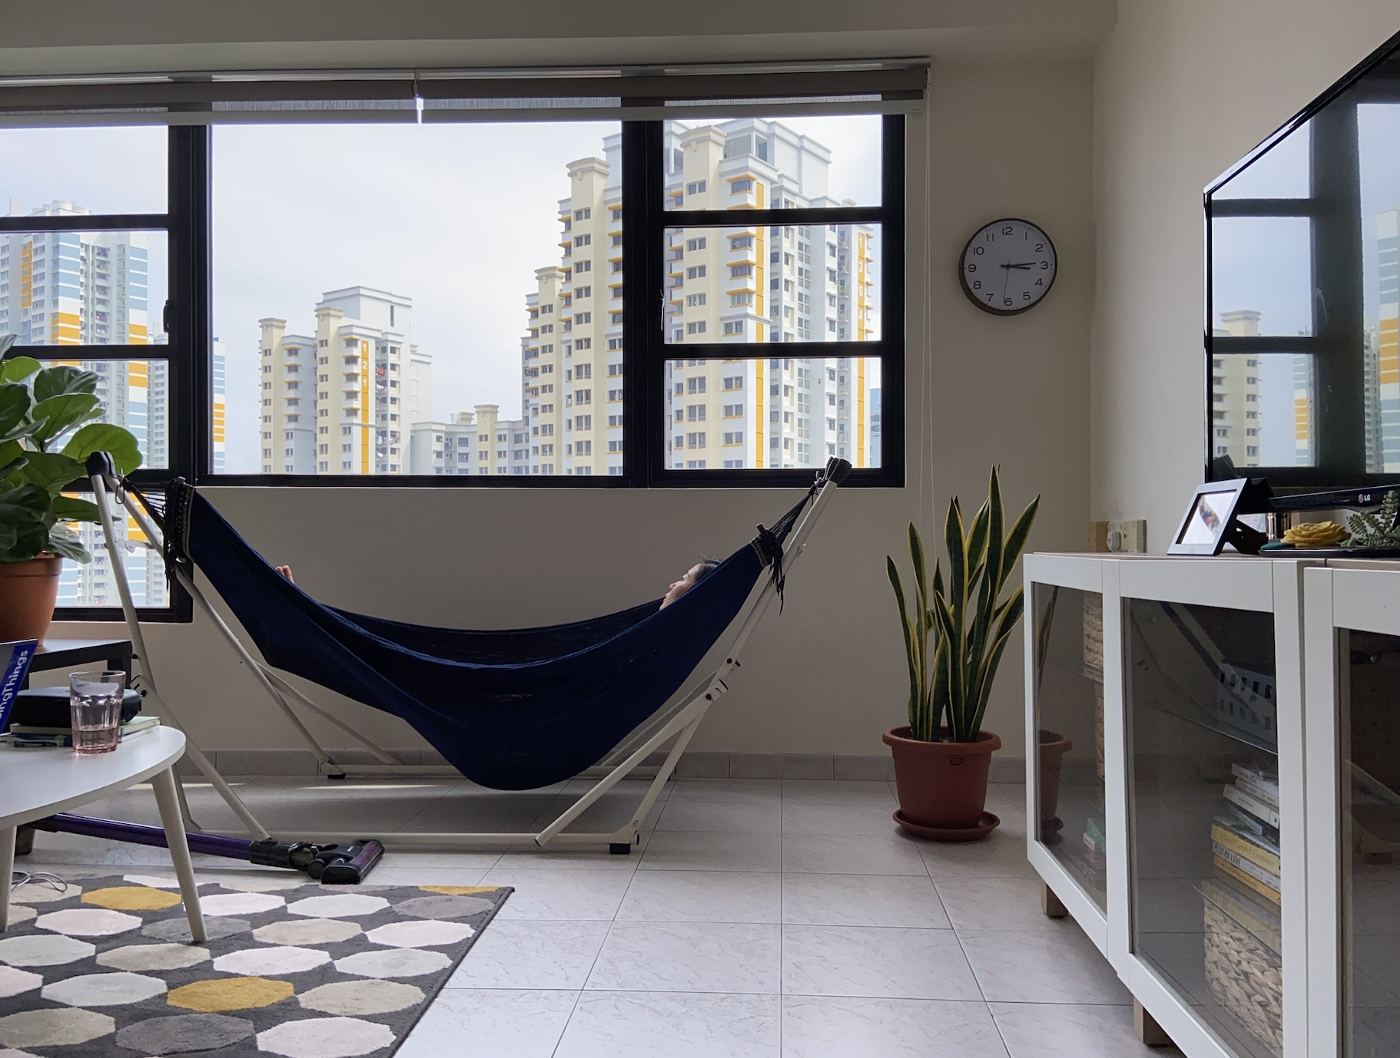 Hanging out in a hammock at my friend's place in Tiong Bahru.